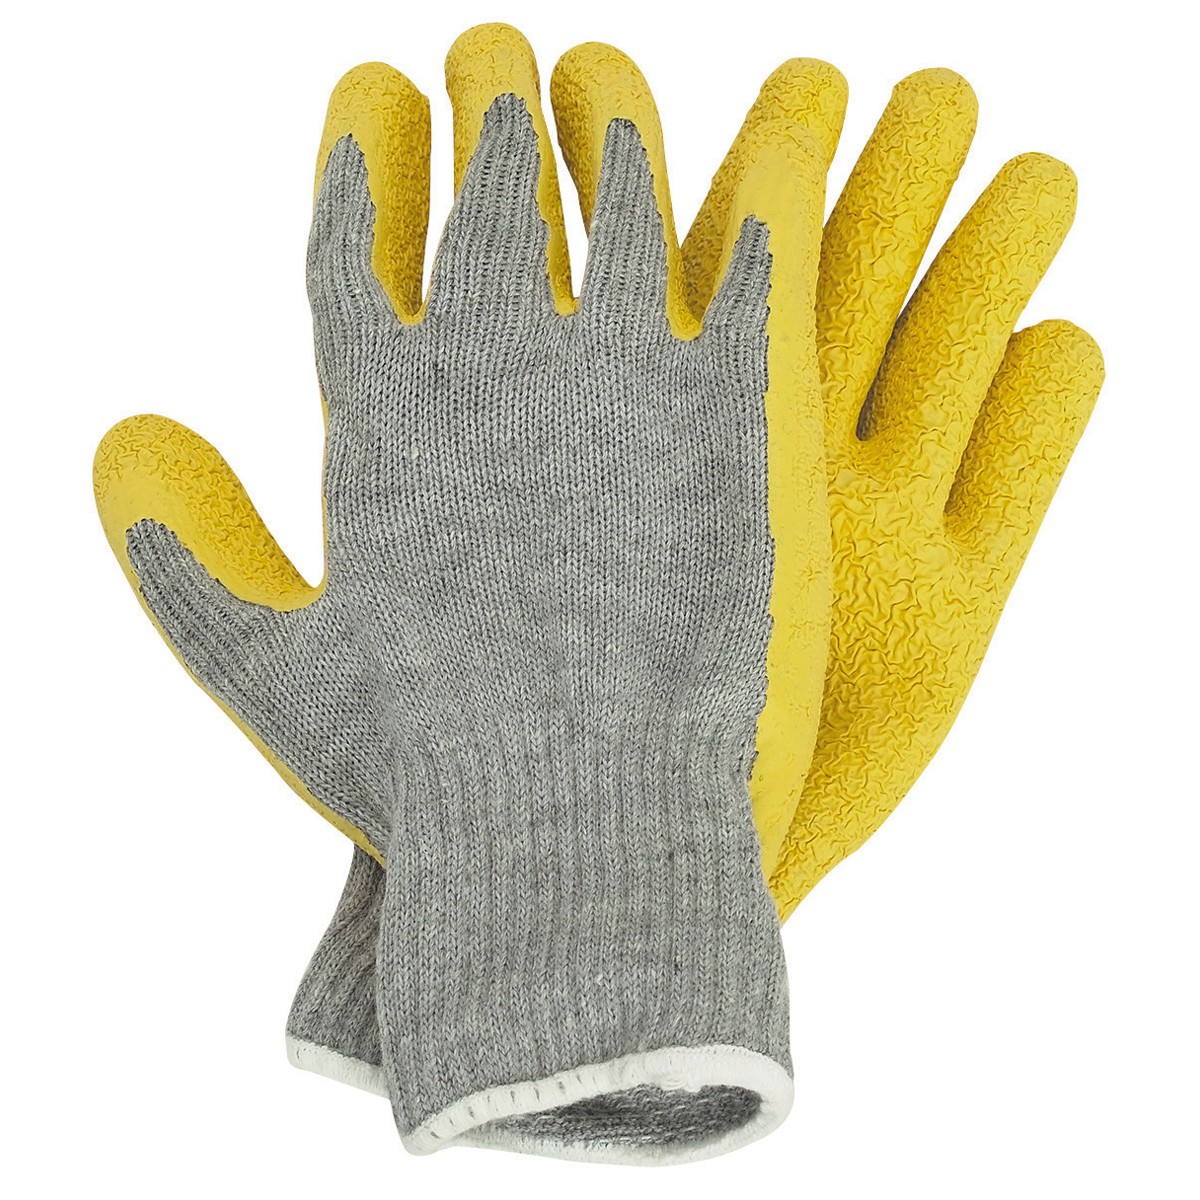 Western Safety Glove X-Large